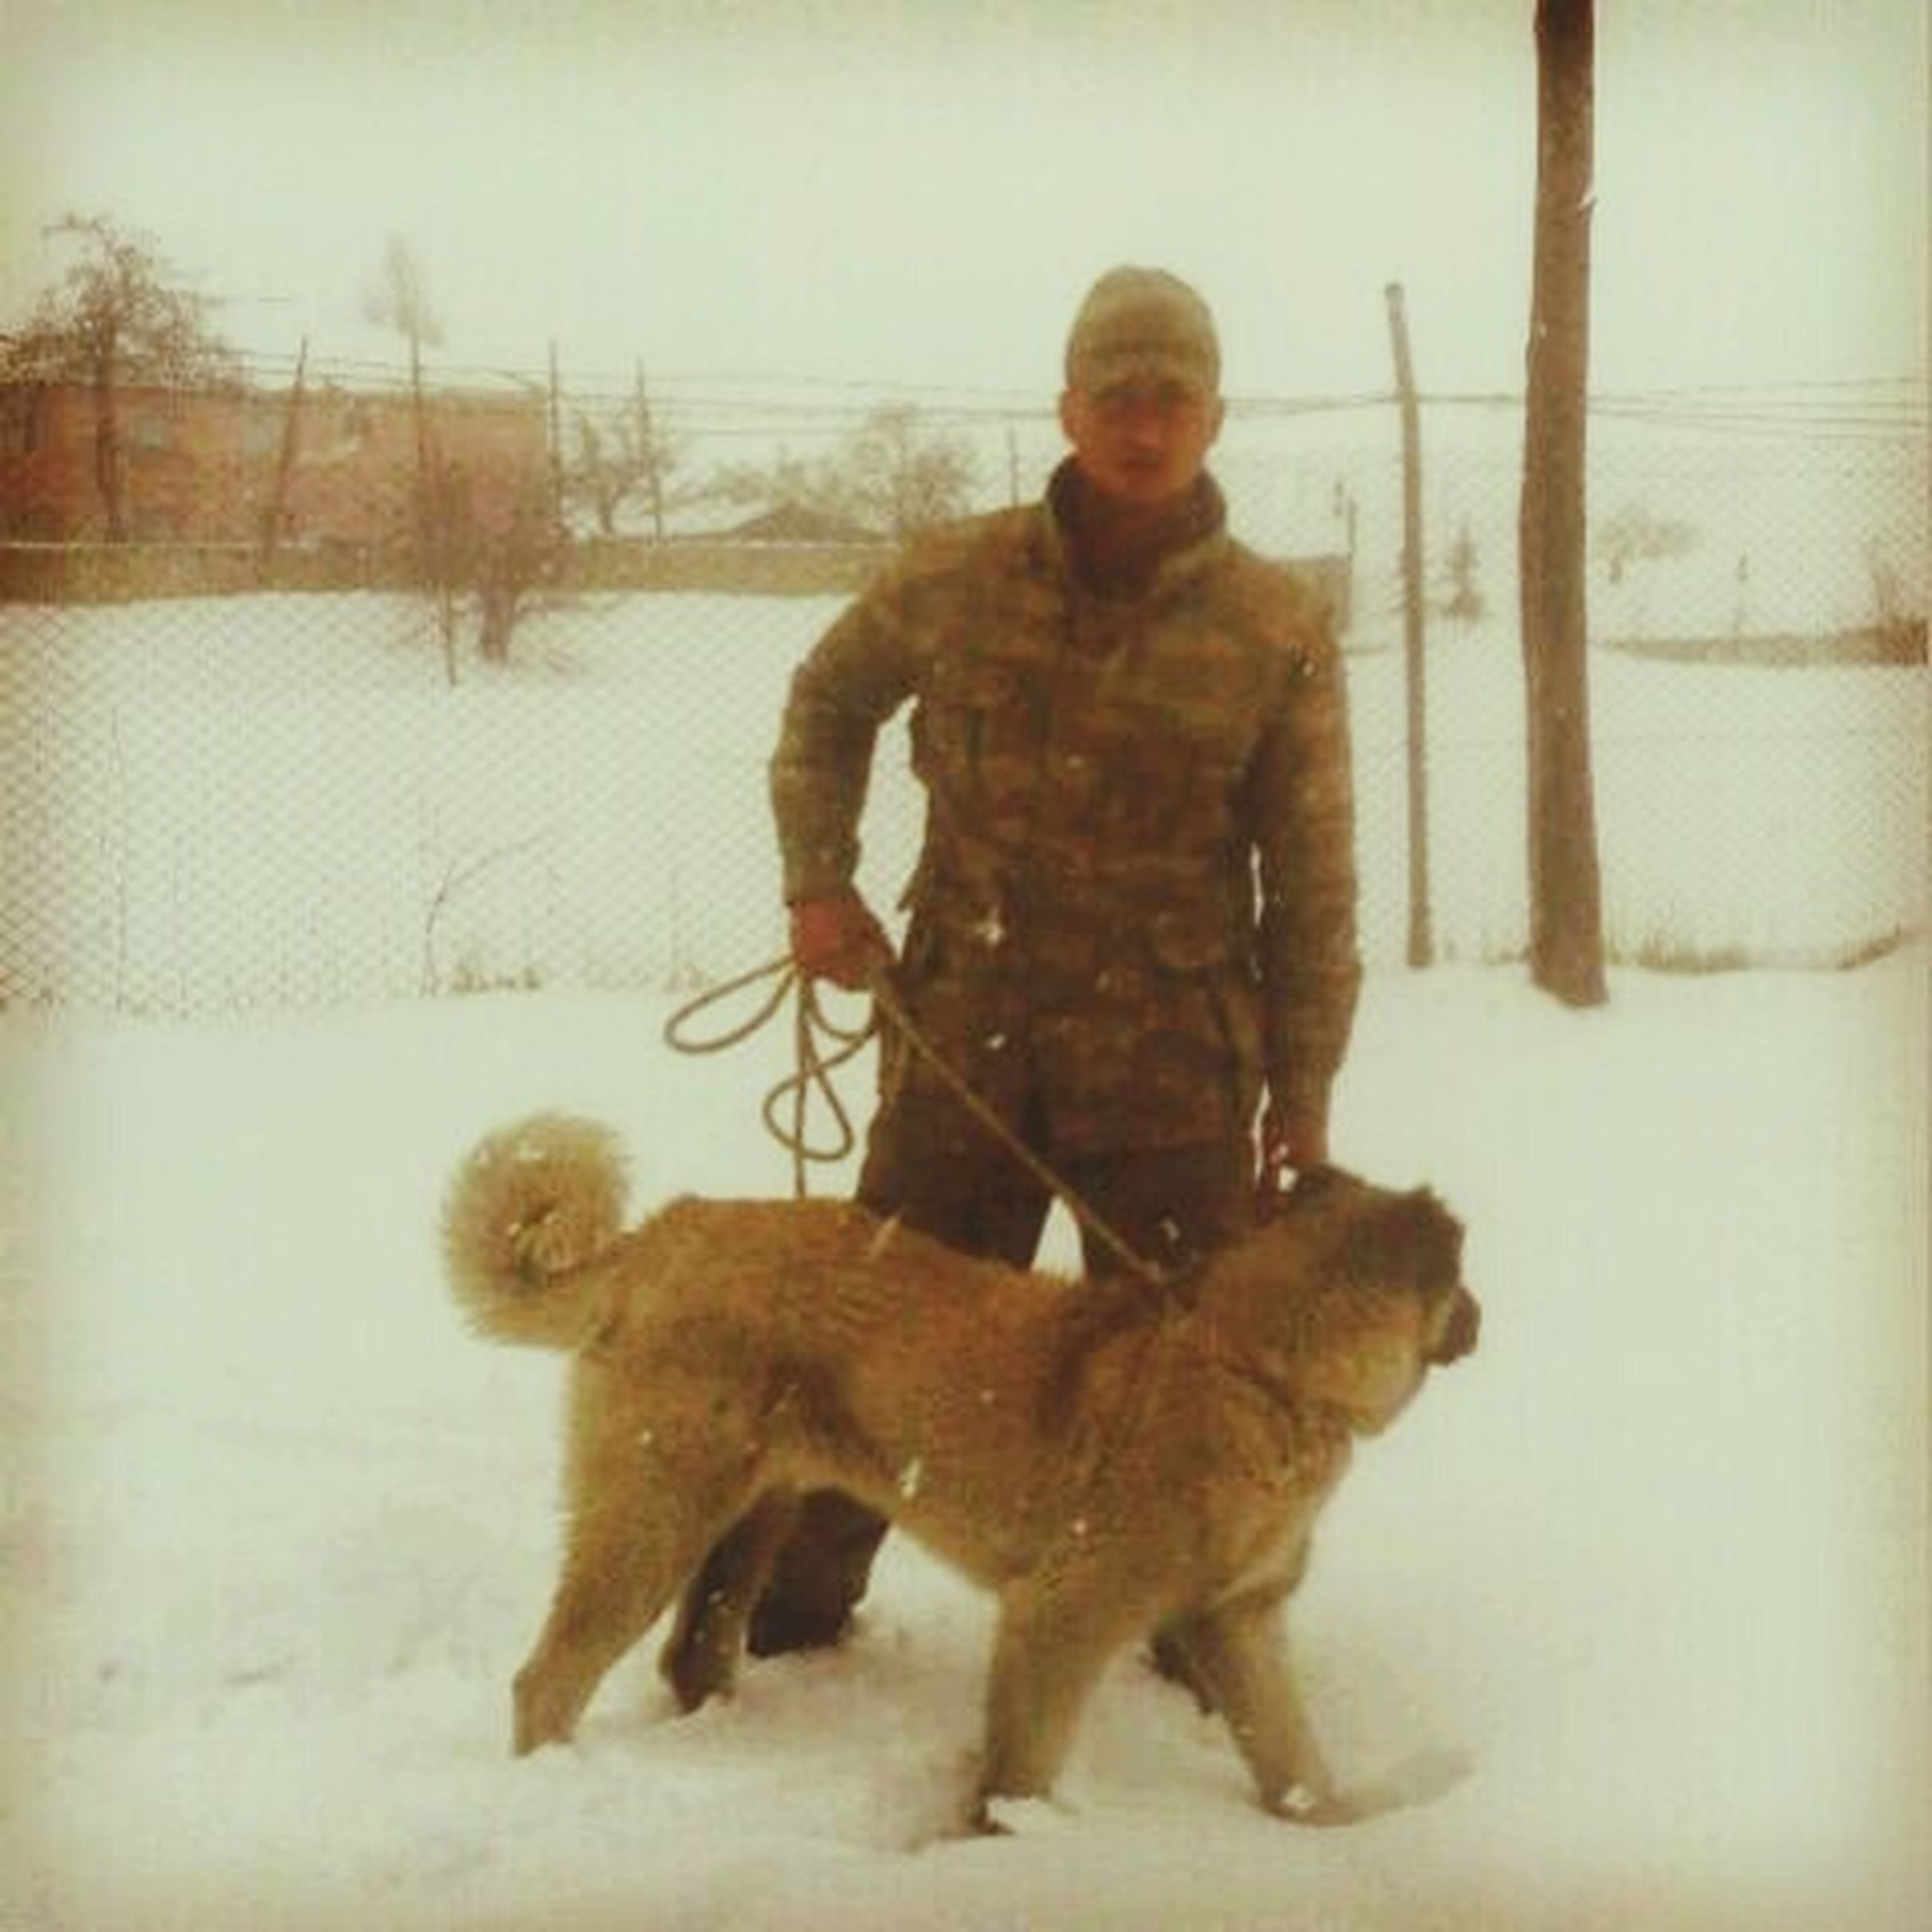 animal themes, domestic animals, mammal, full length, winter, pets, snow, dog, one animal, cold temperature, season, two animals, togetherness, field, childhood, standing, playful, playing, weather